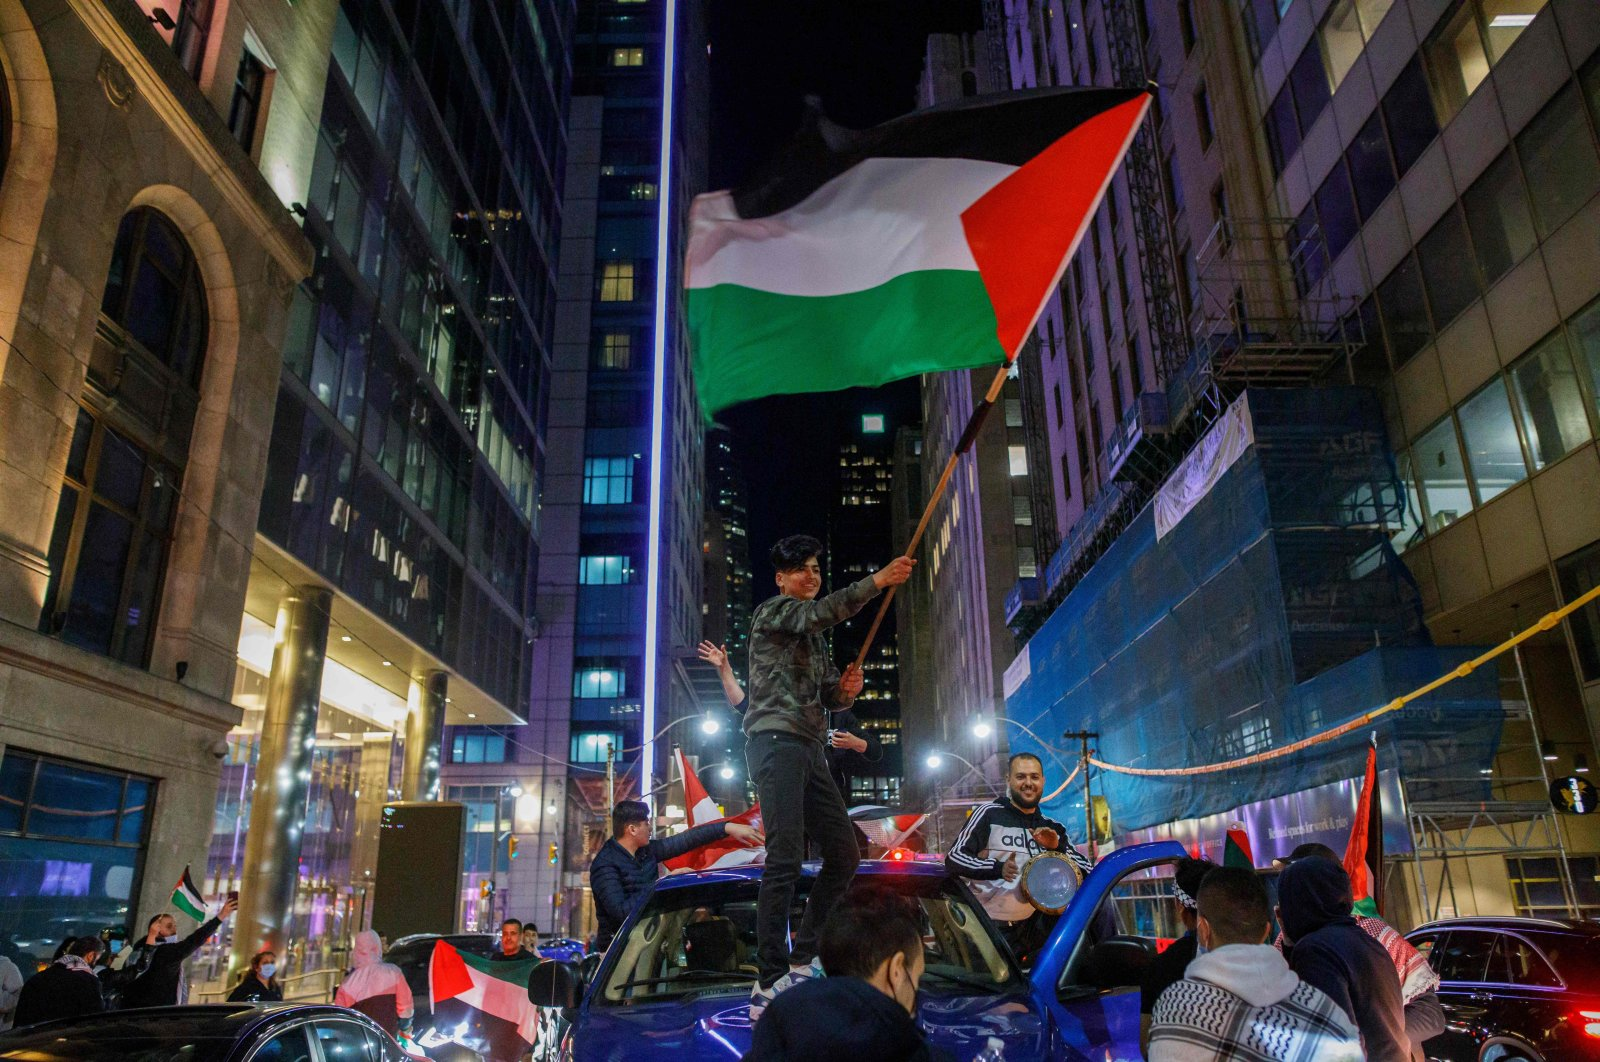 People wave flags atop cars in traffic during a demonstration to voice support for the people of Palestine, at Toronto City Hall in Toronto, Ontario, Canada, on May 15, 2021. (AFP Photo)